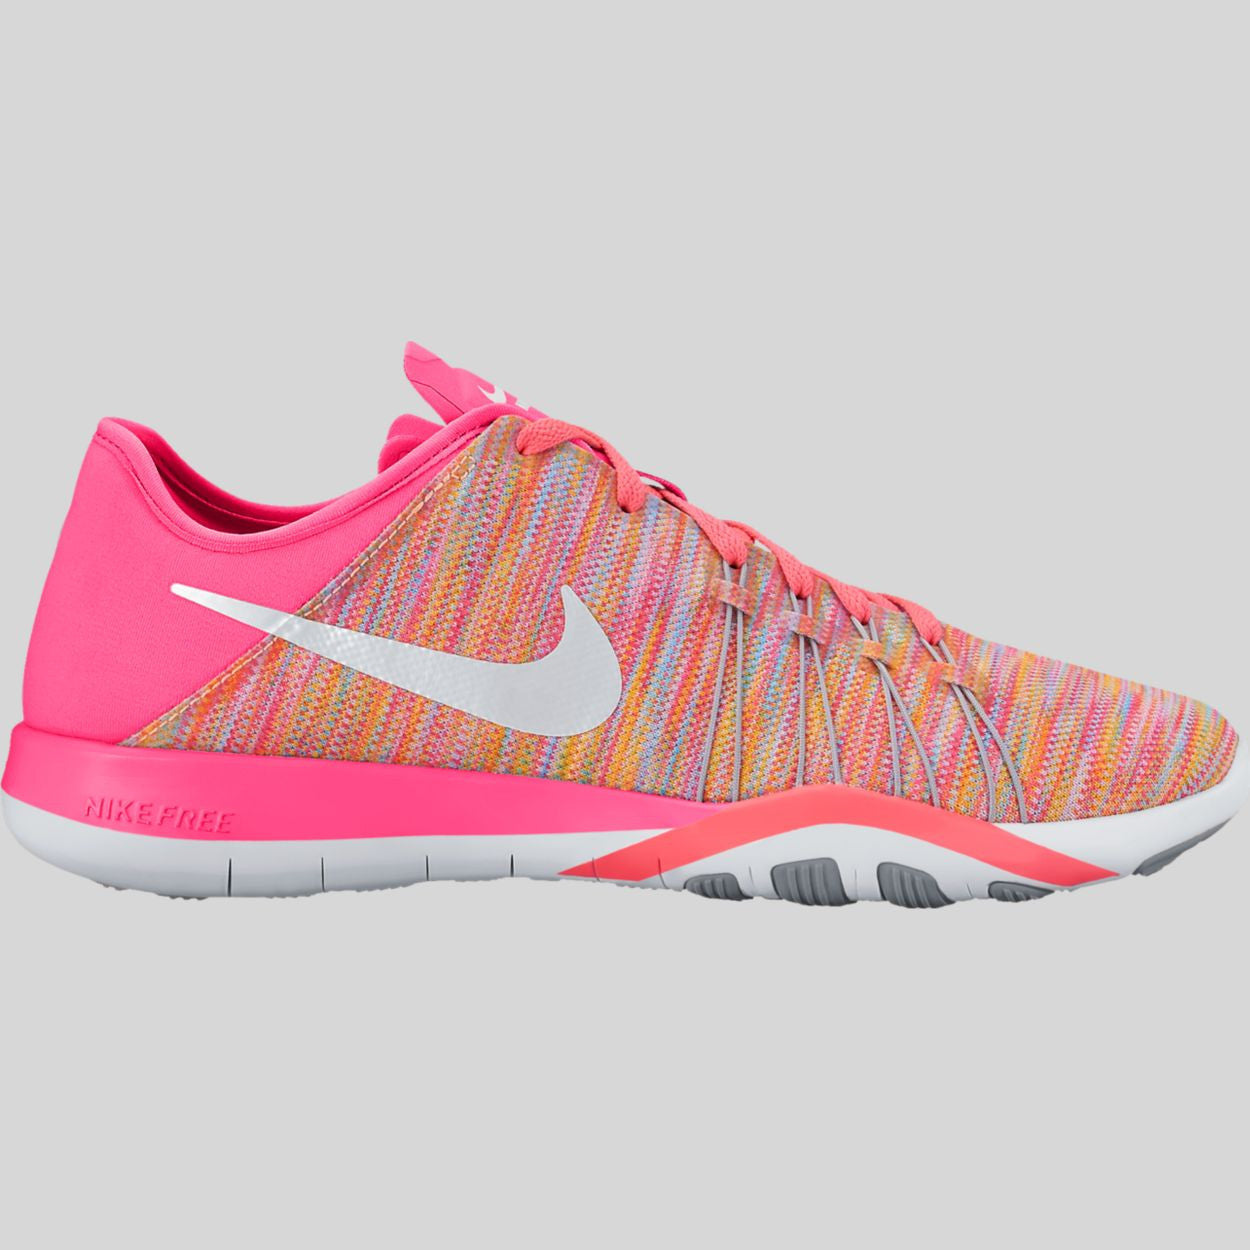 on sale b4a31 c0b8d Nike Wmns Free TR 6 AMP Racer Pink White Cool Grey Sunset Glow (882819-